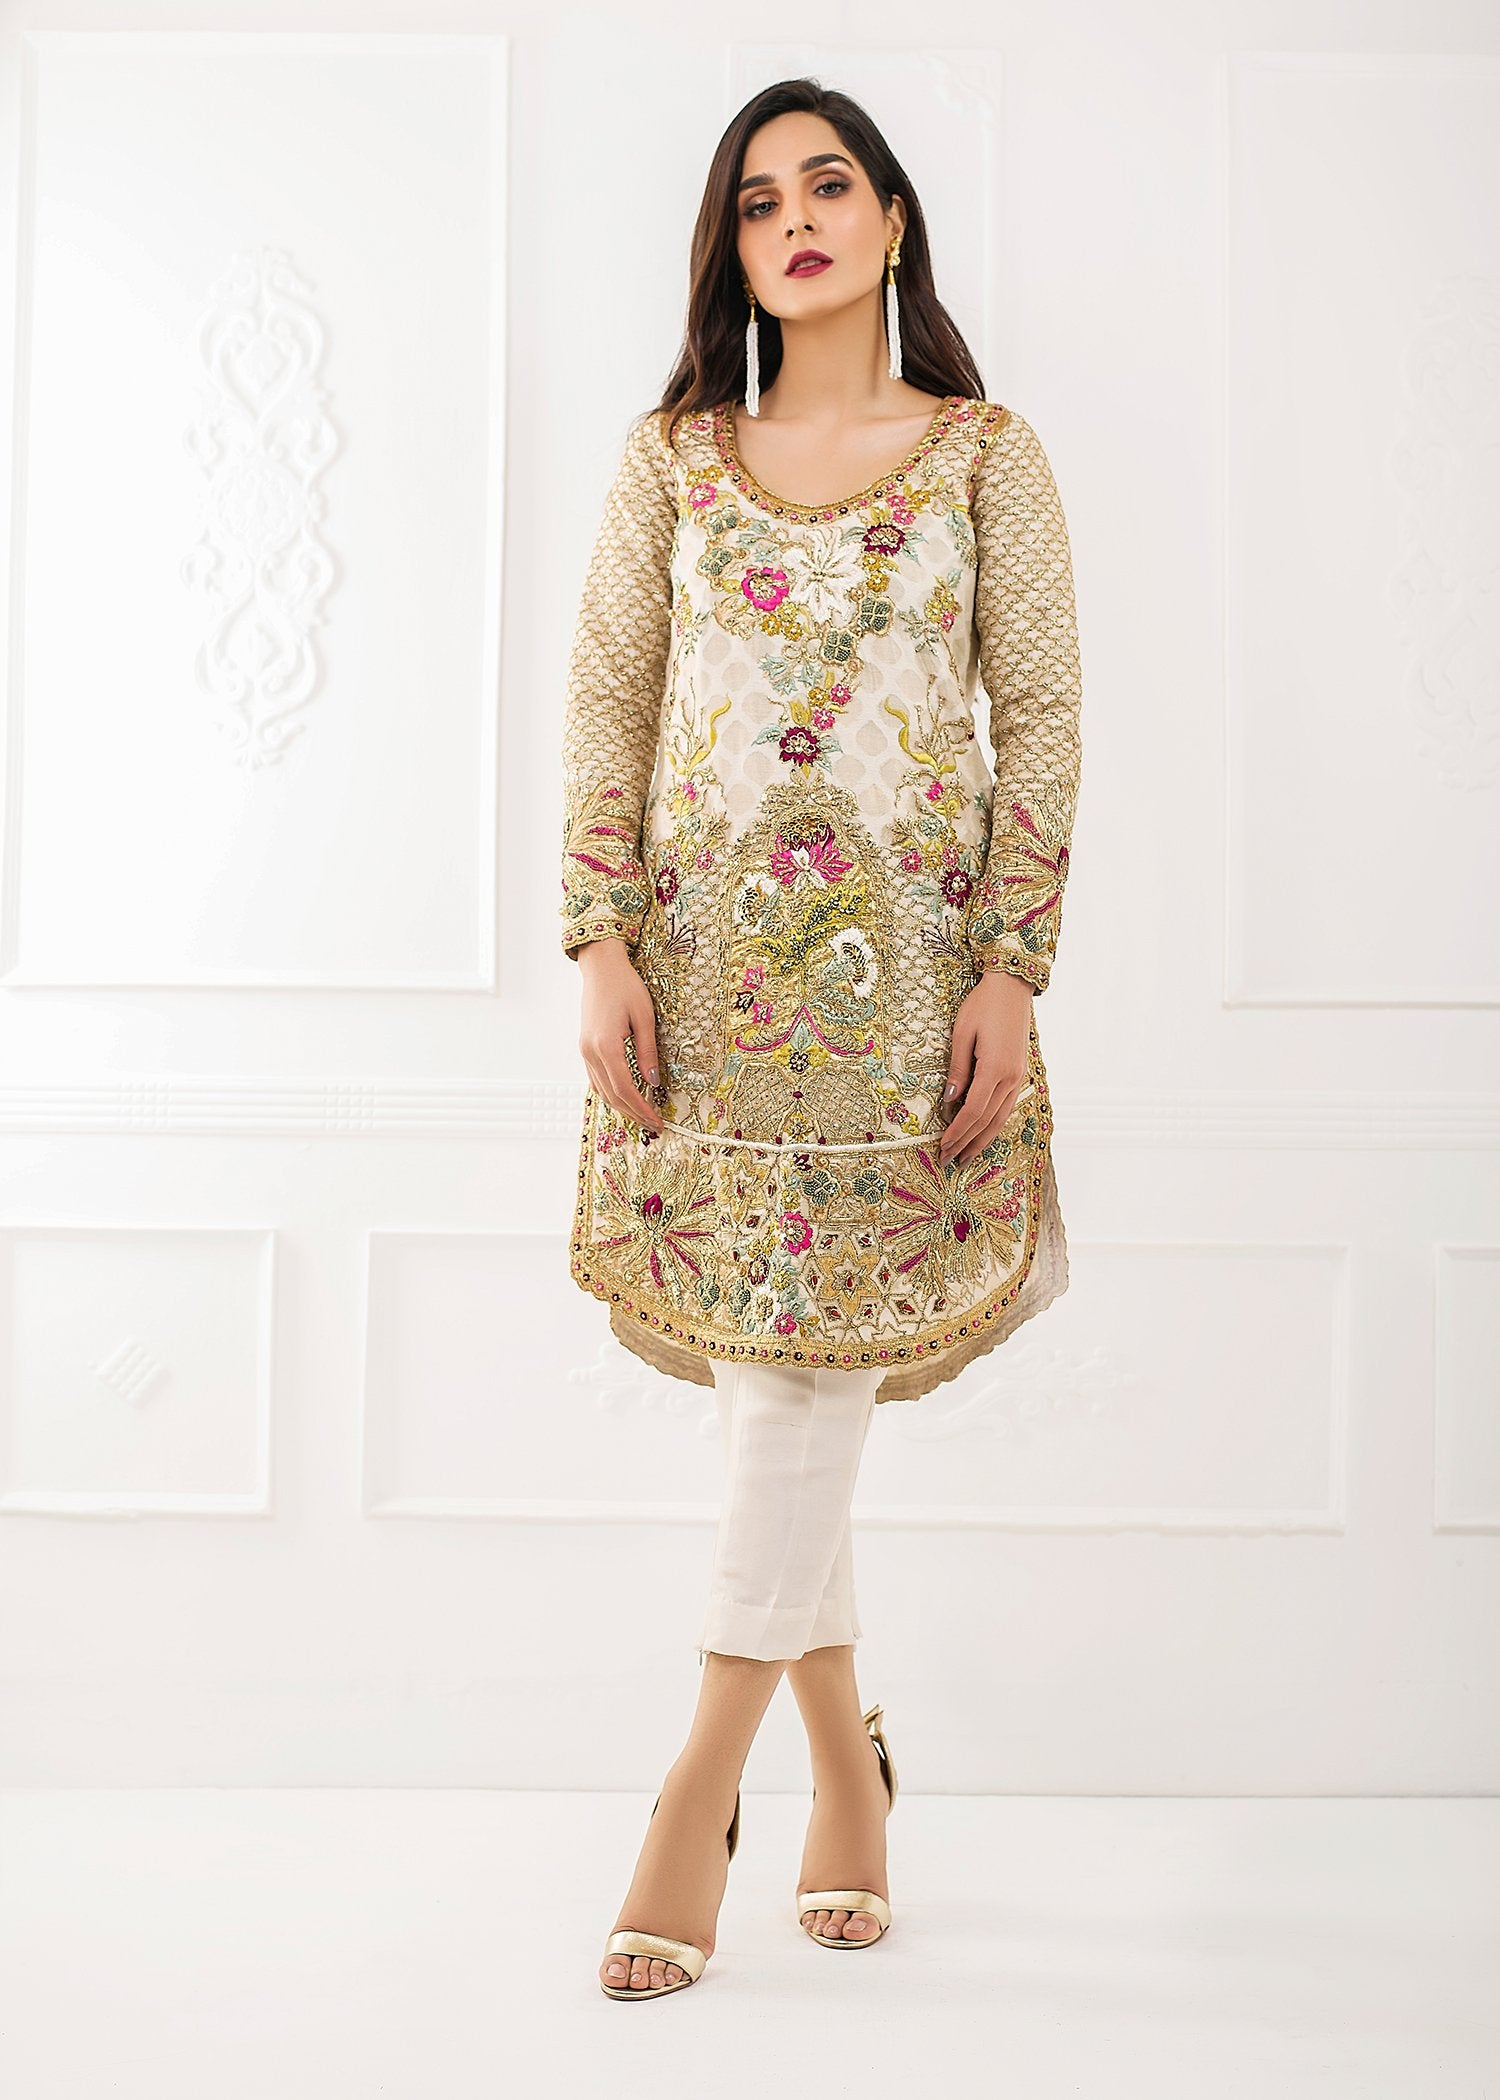 CASCADE Online shopping pakistan clothing